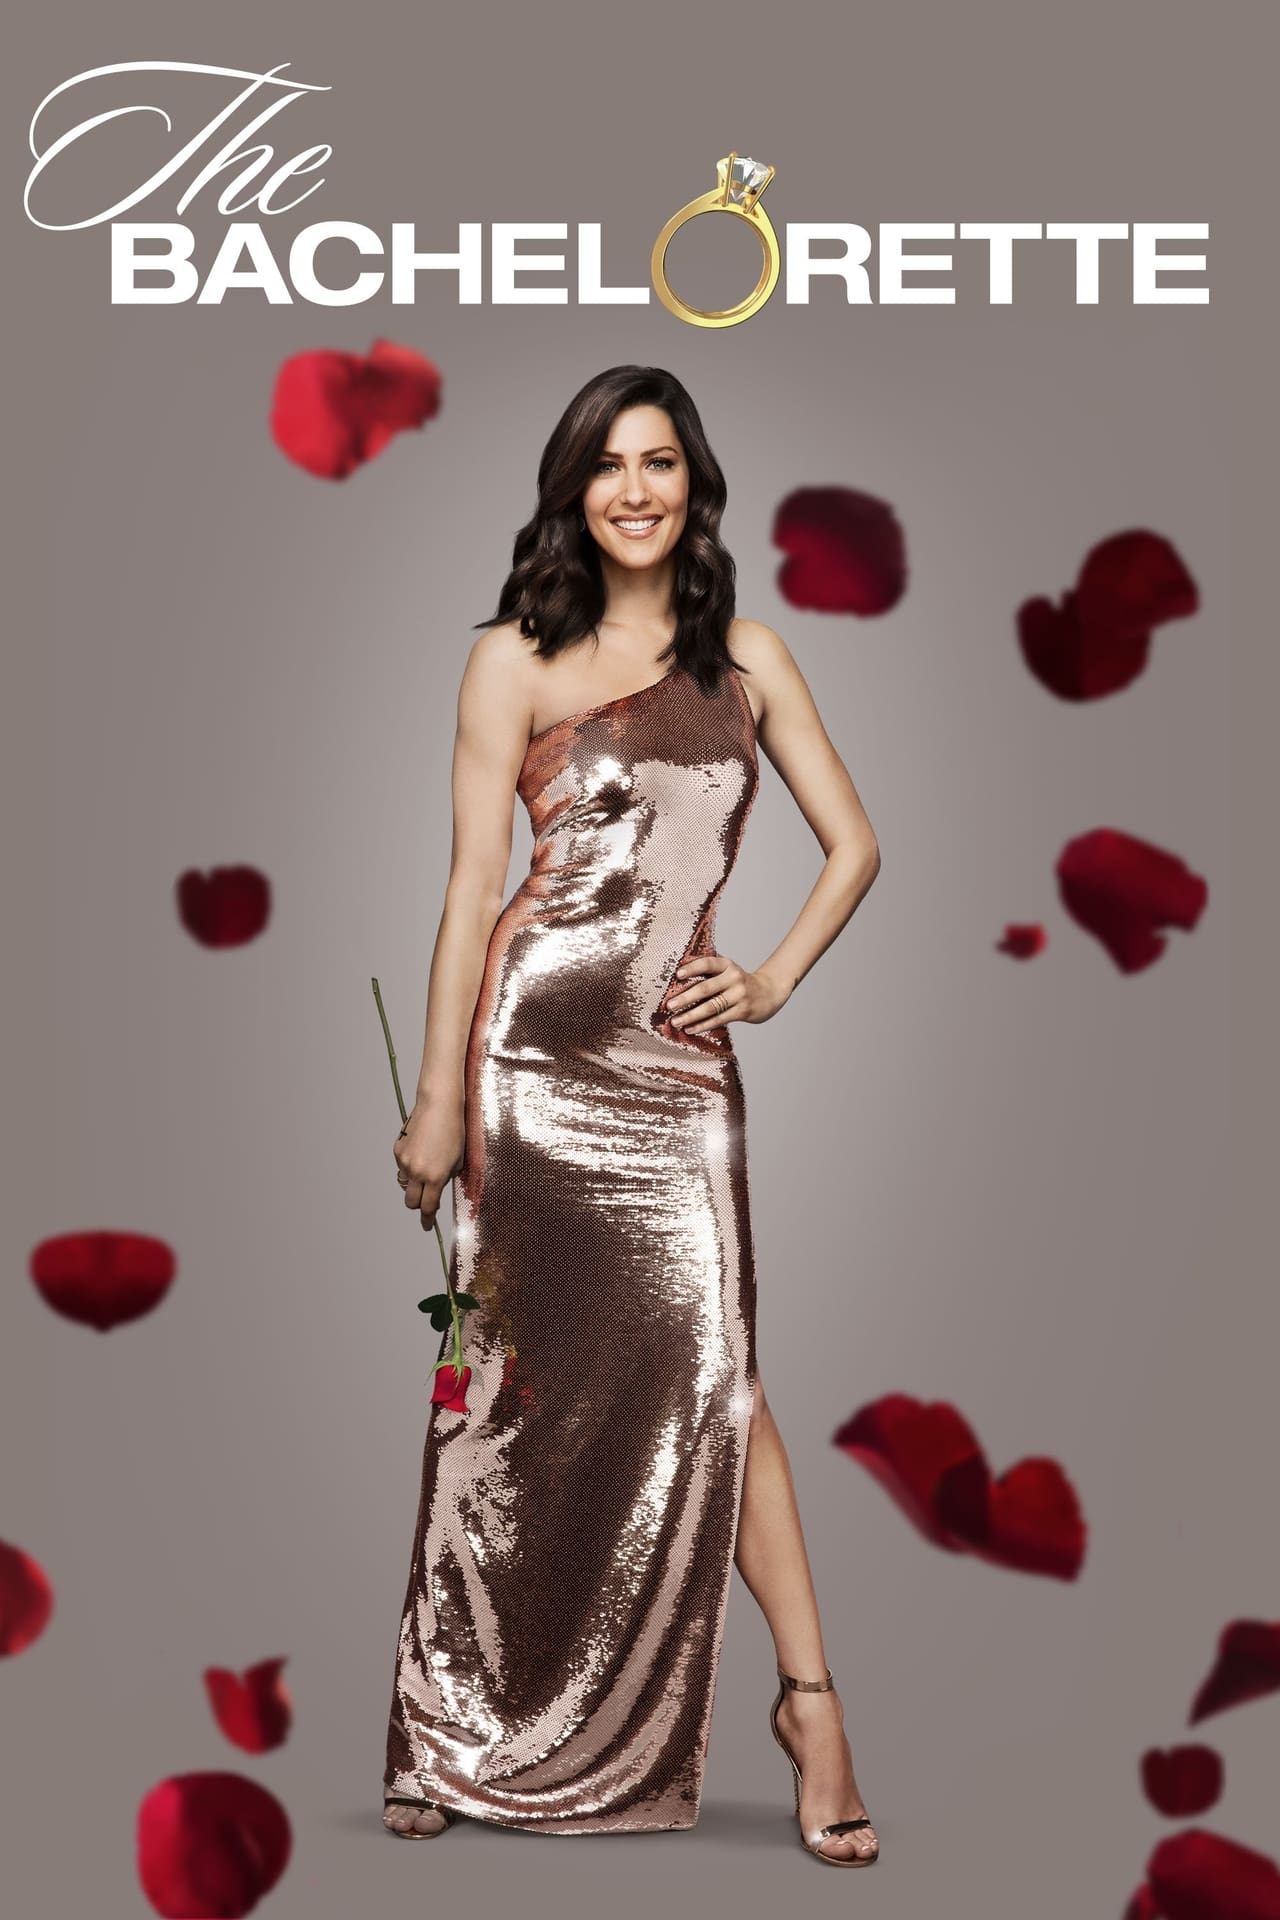 Watch The Bachelorette Season 8 Online